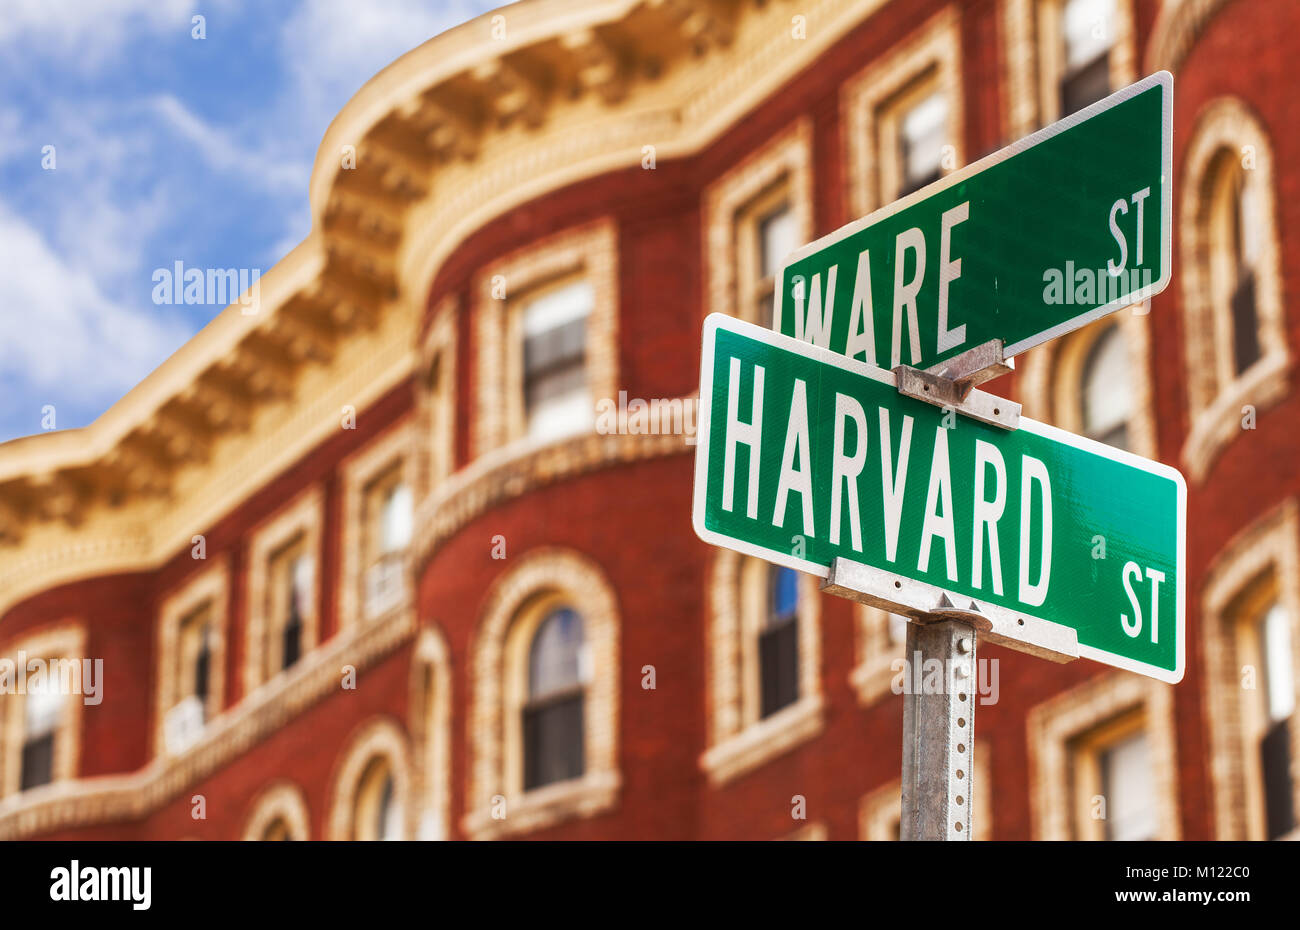 Harvard University Stock Photos & Harvard University Stock Images ...